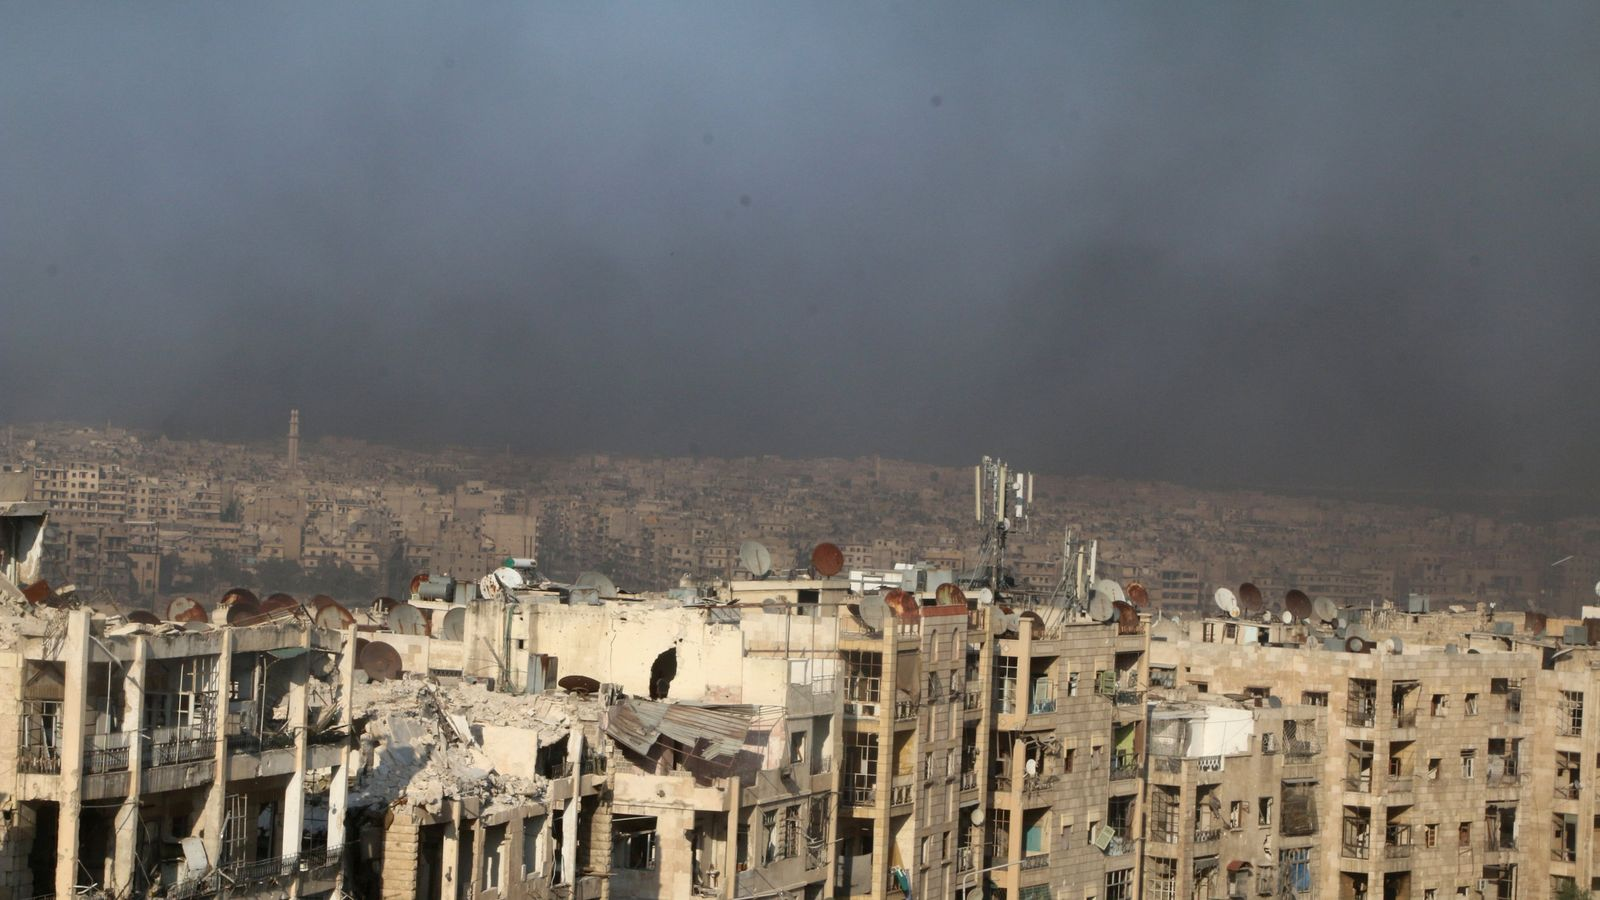 A general view shows rising smoke from burning tyres, which activists said are used to create smoke cover from warplanes, in Aleppo